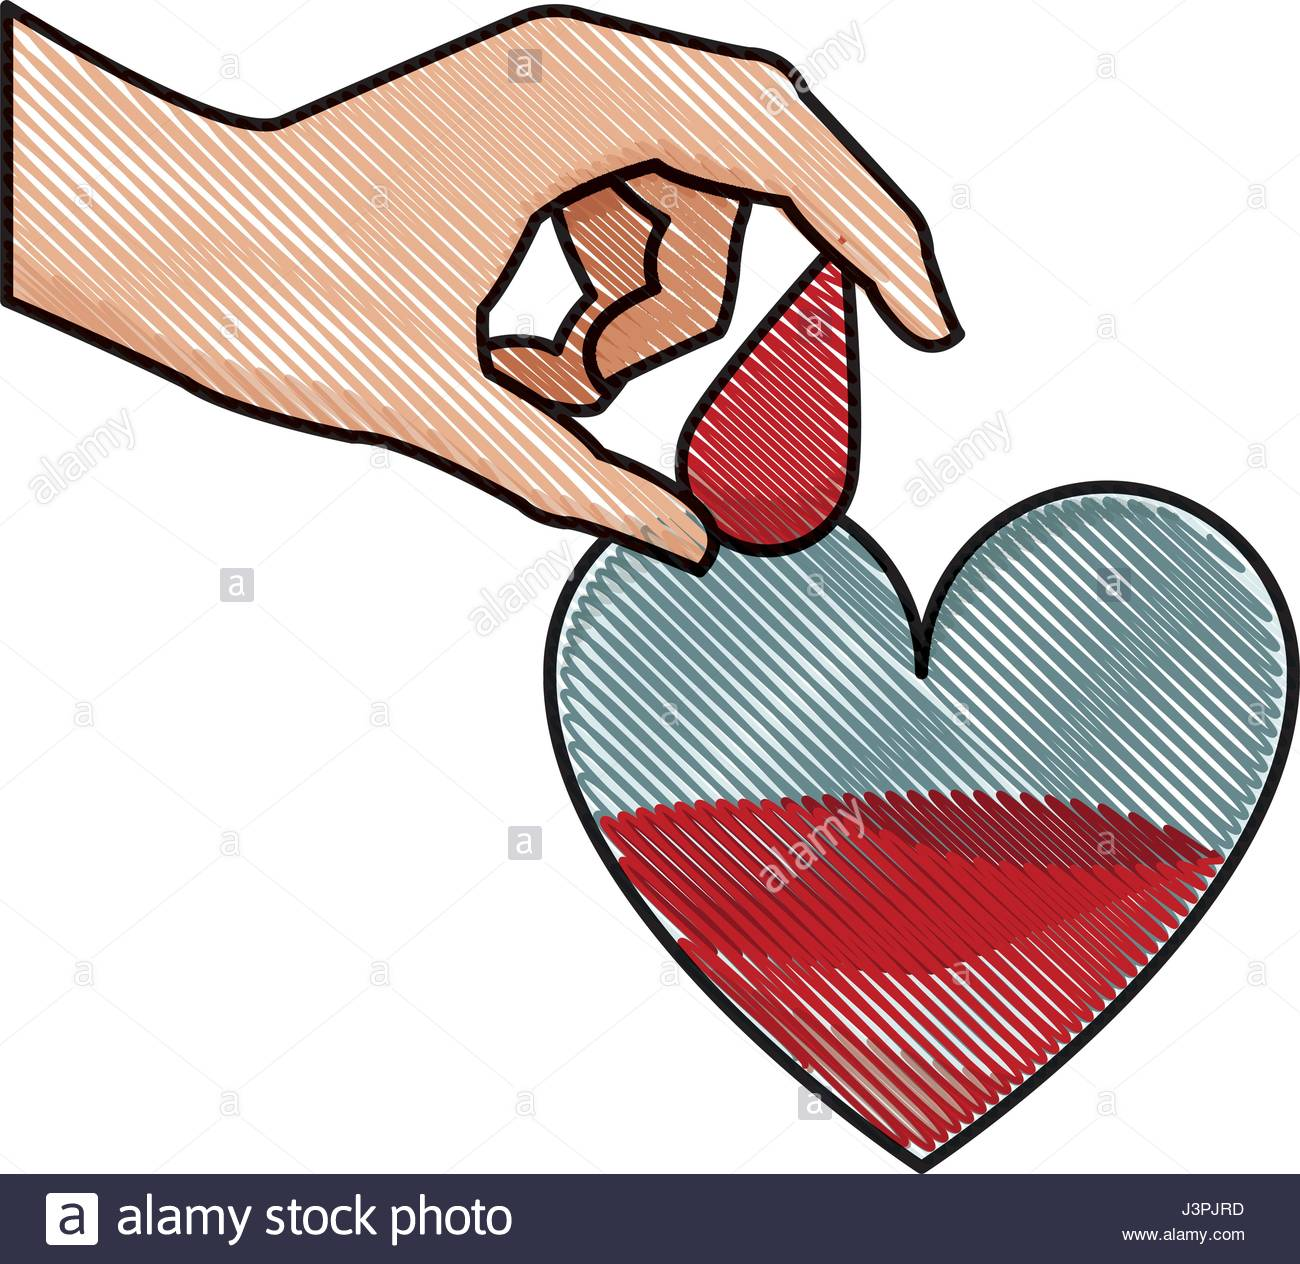 1300x1264 Drawing Hand Holding Drop Blood Heart Donation Stock Vector Art